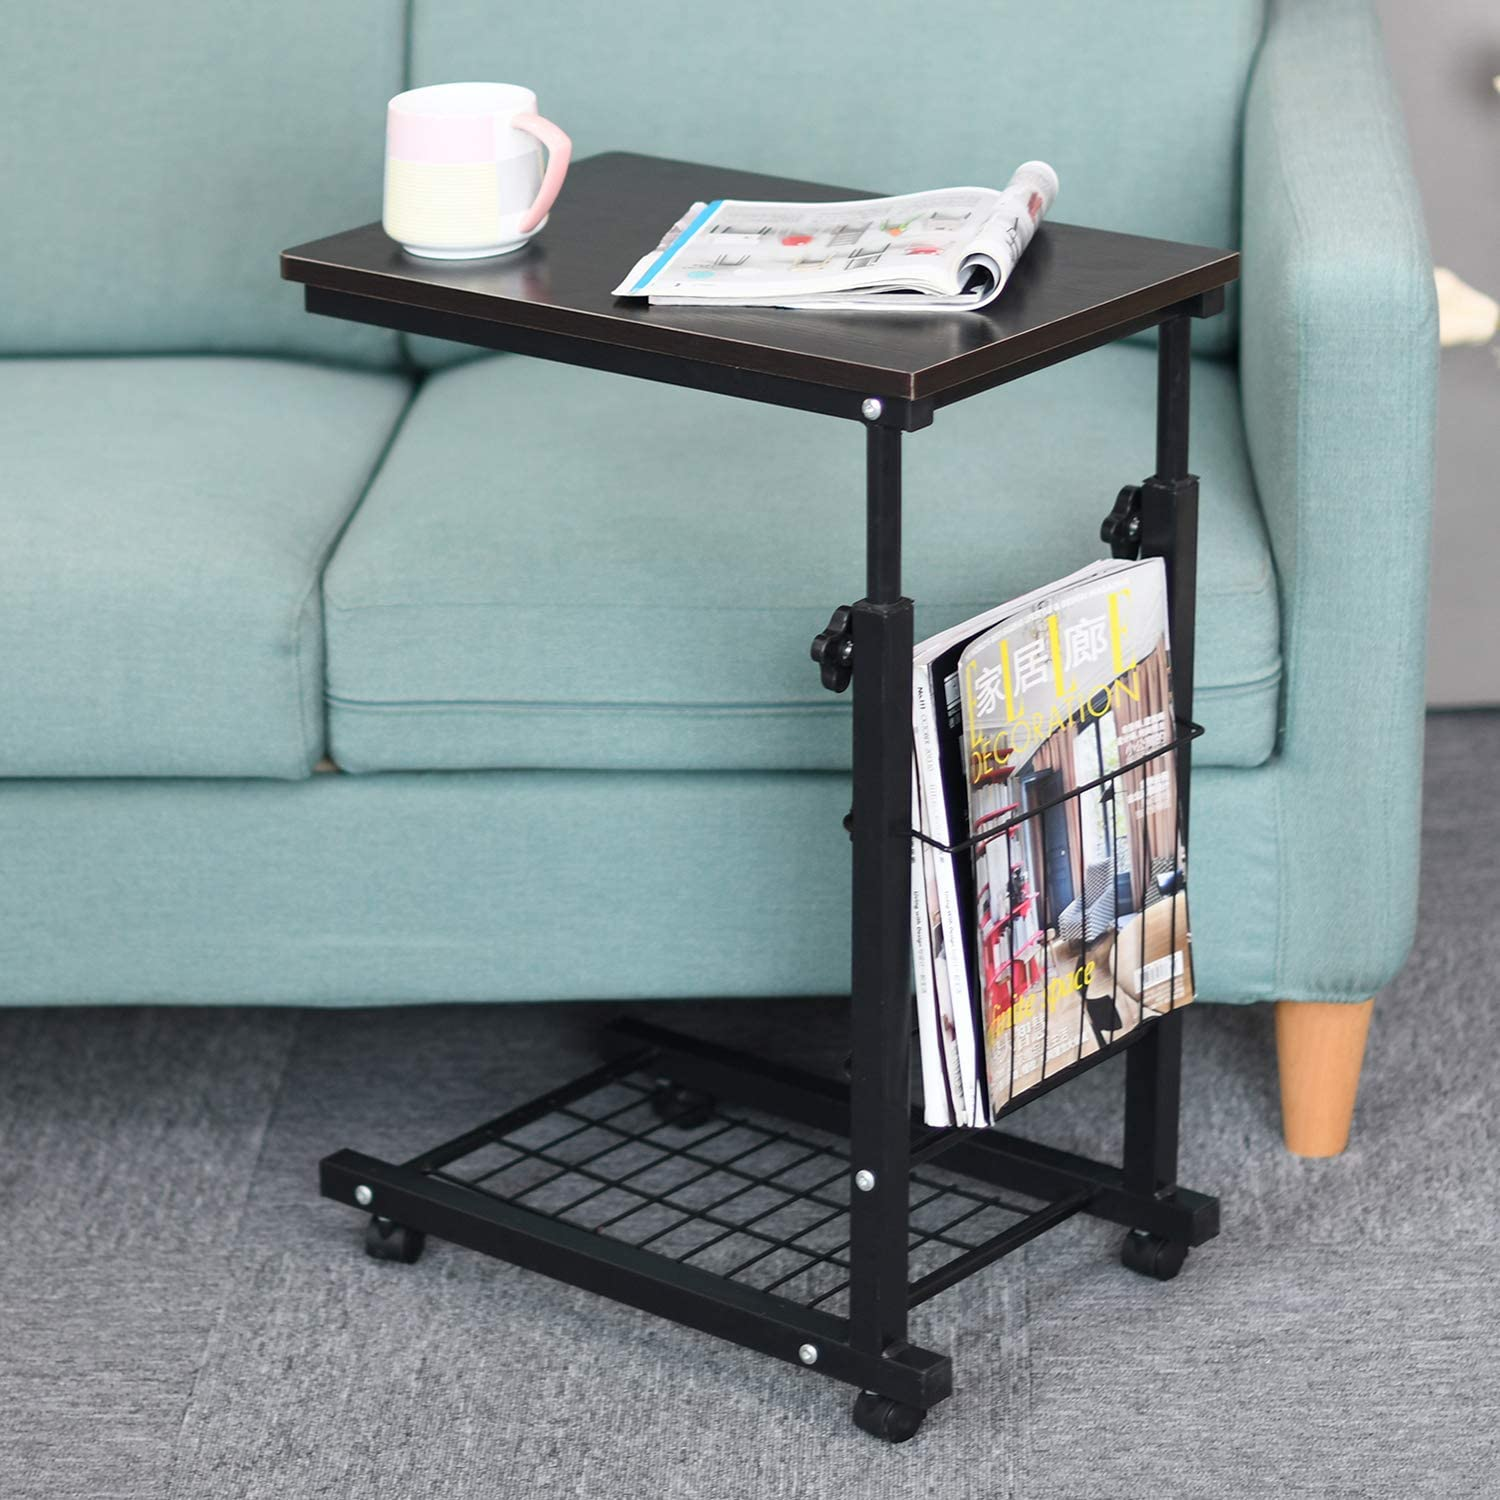 Sogesfurniture 18 9 Inches Height Adjustable Sofa Side Table End Table C Table Laptop Holder End Stand Desk Coffee Tray Walmart Canada